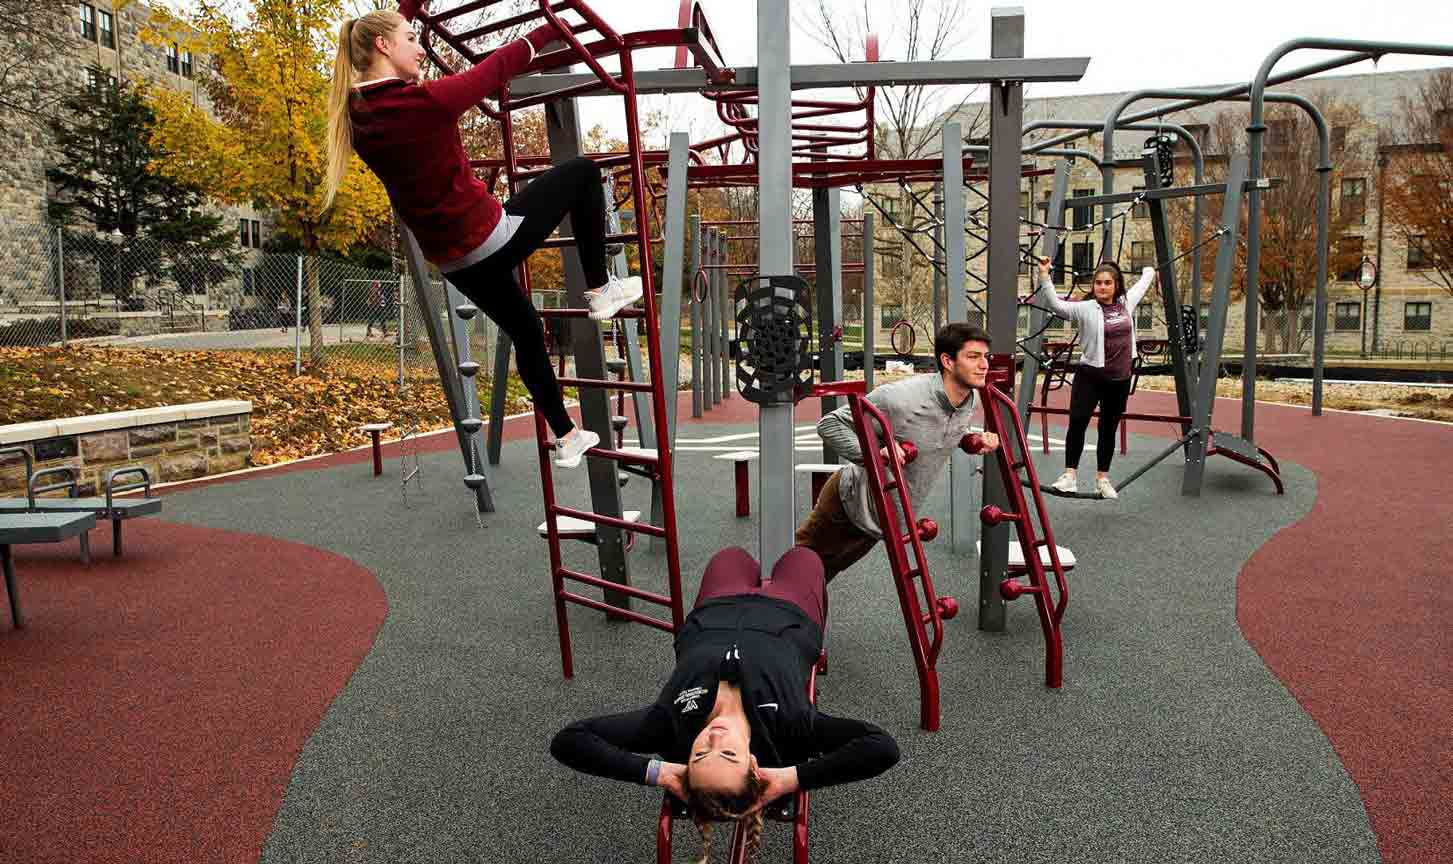 teens on compact fitness equipment